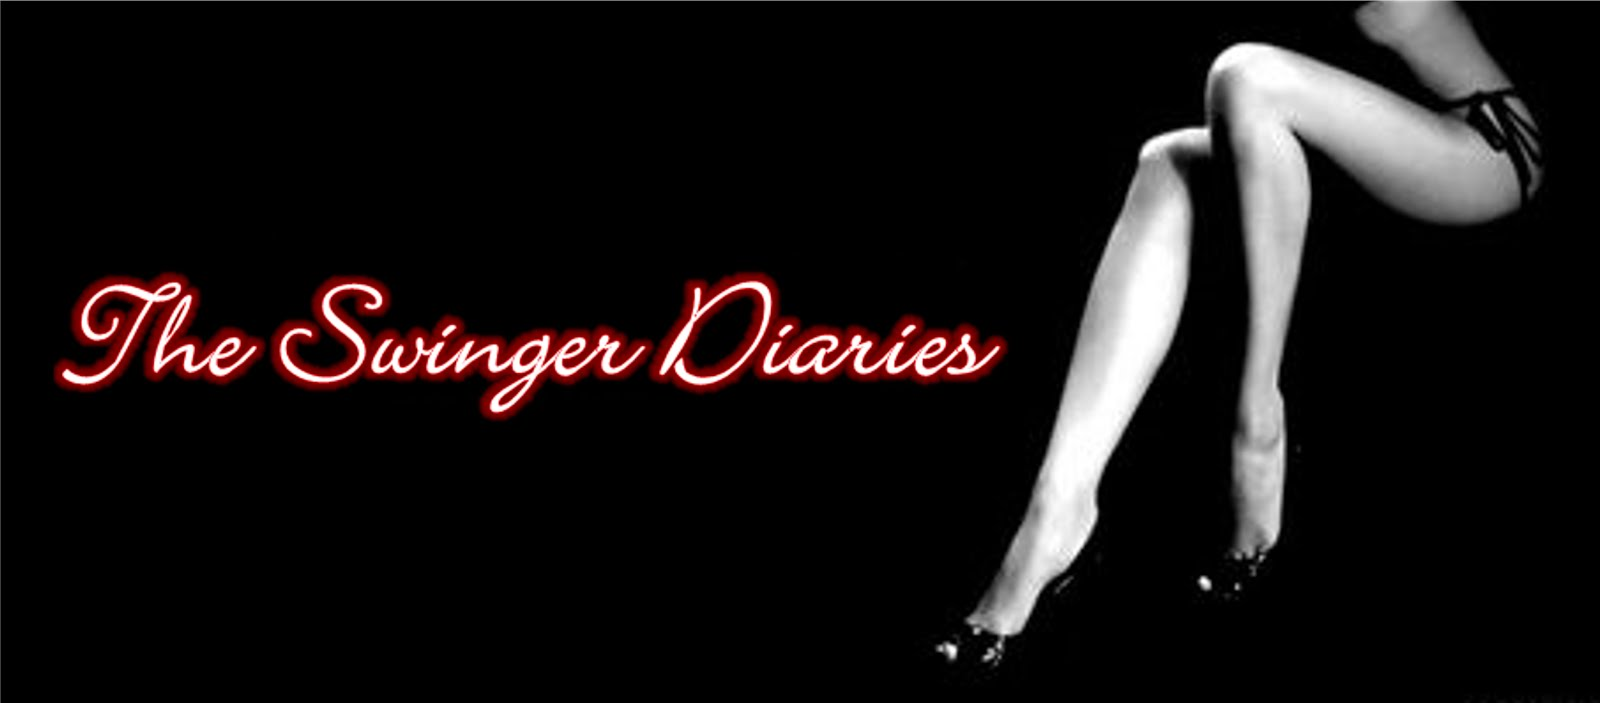 The Swinger Diaries